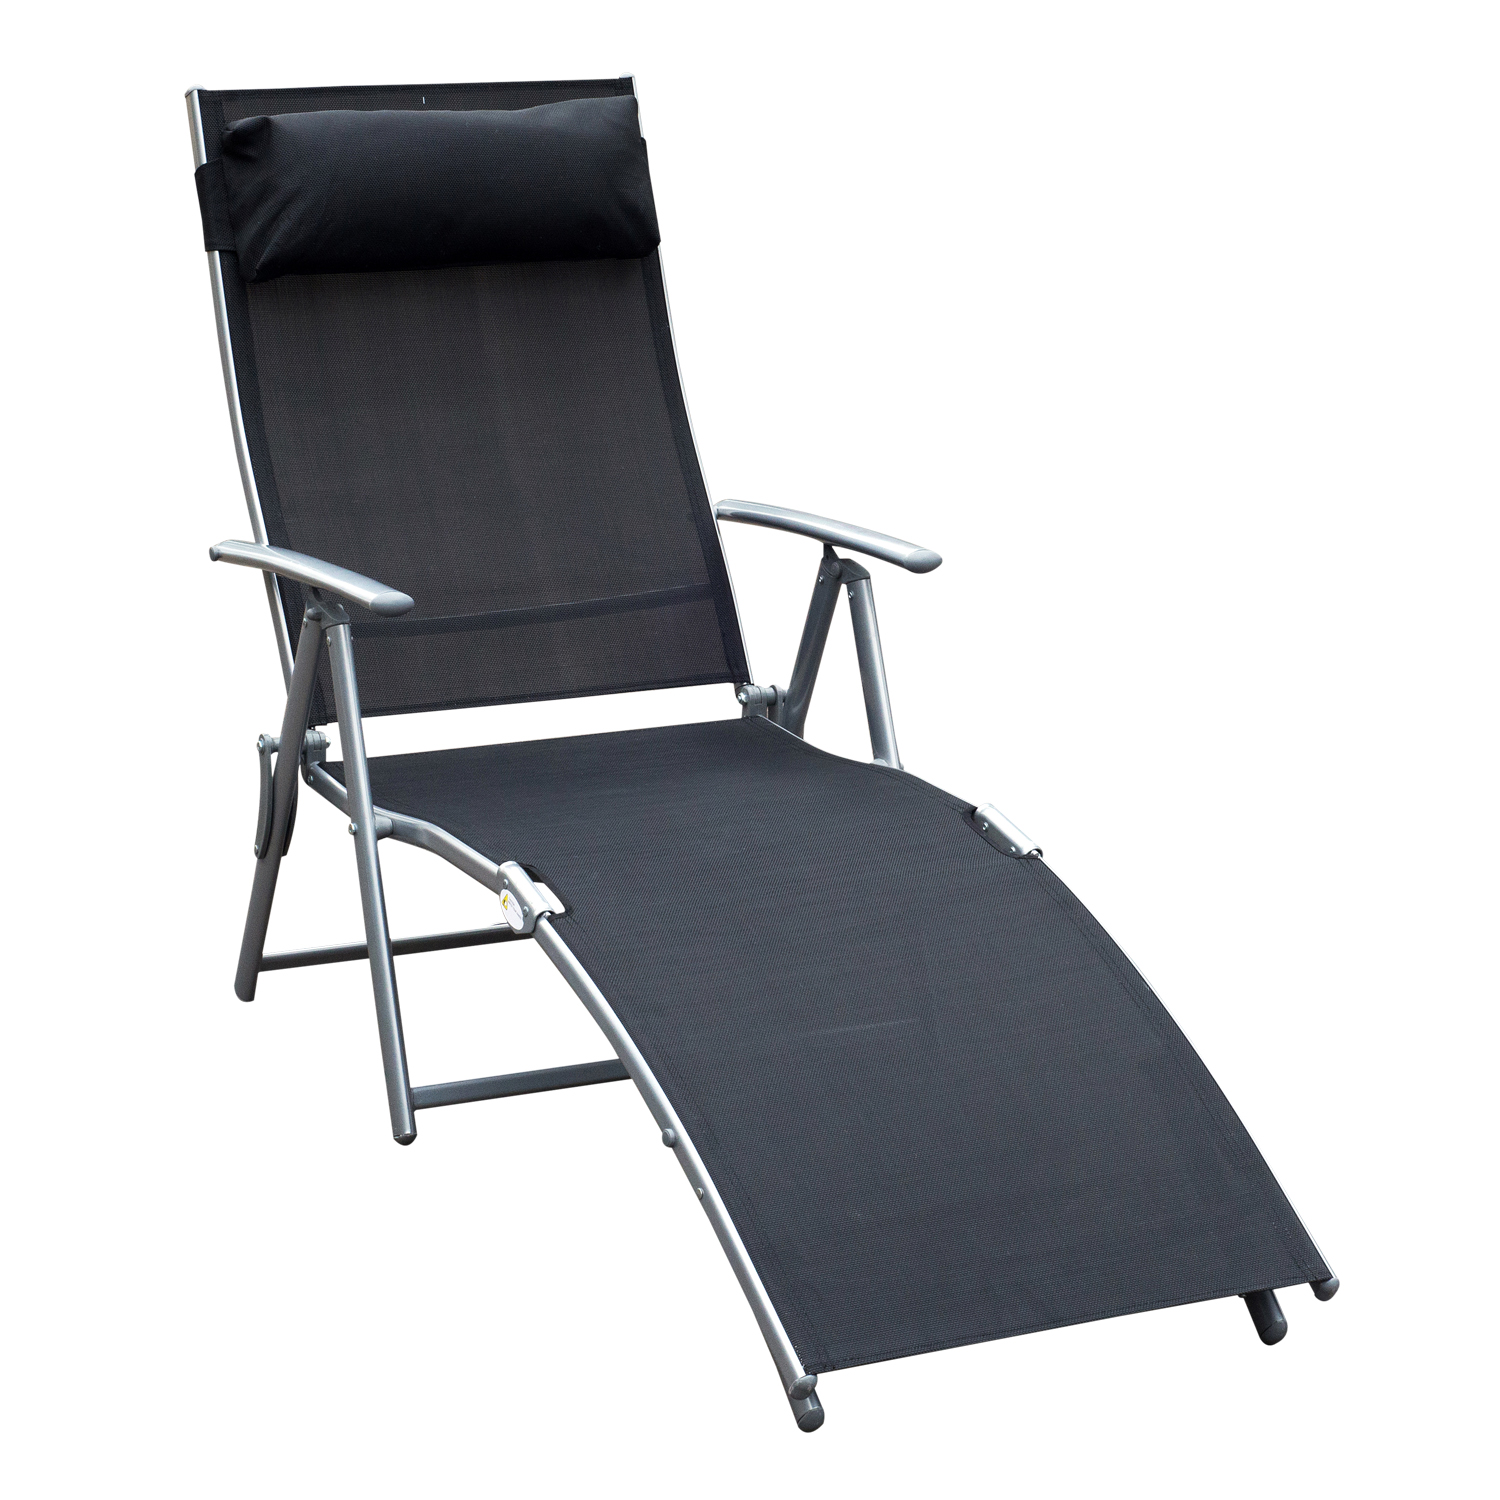 Beach Lounger Chair Chaise Lounge Chair Folding Pool Beach Yard Adjustable